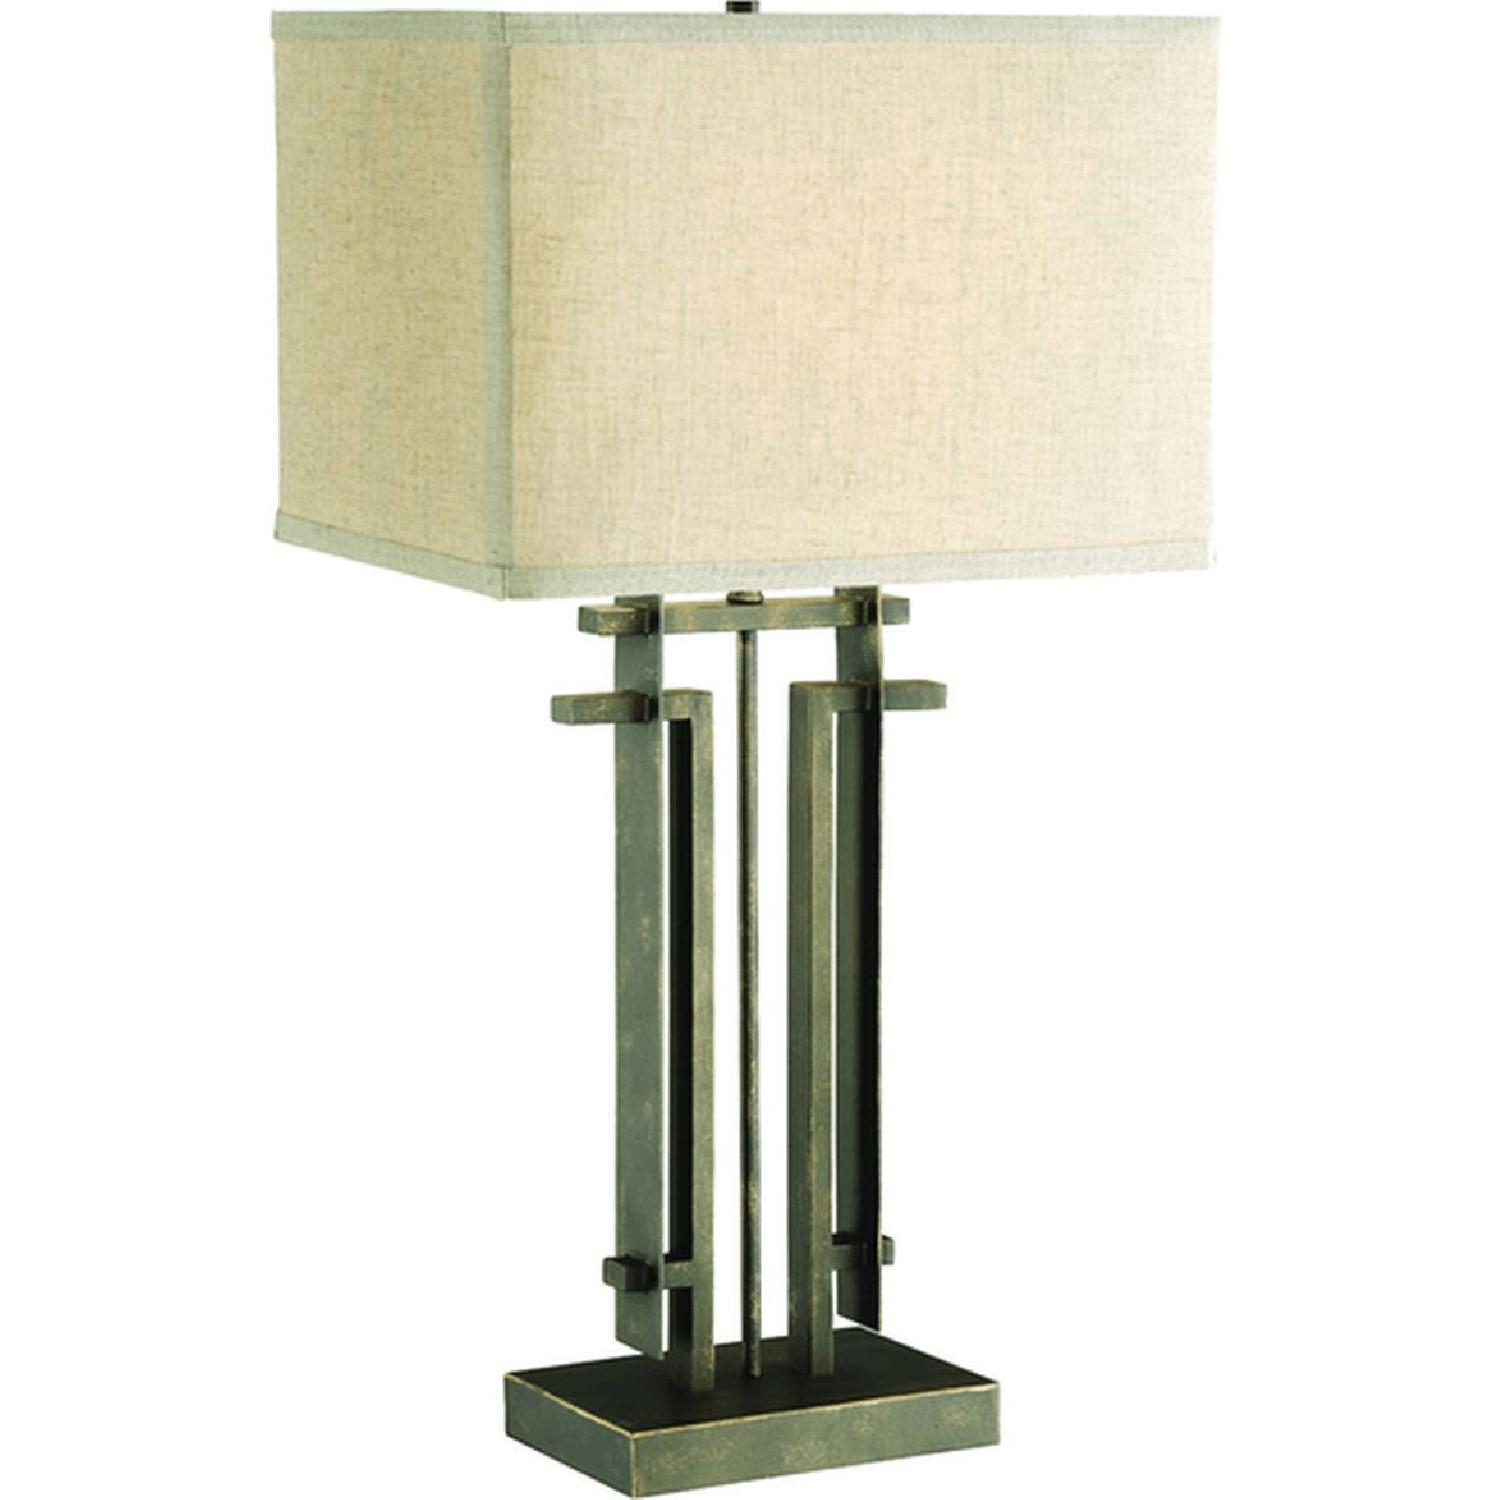 Table Lamp w/ Perpendicular Lines in an Architectural Frame - image-0